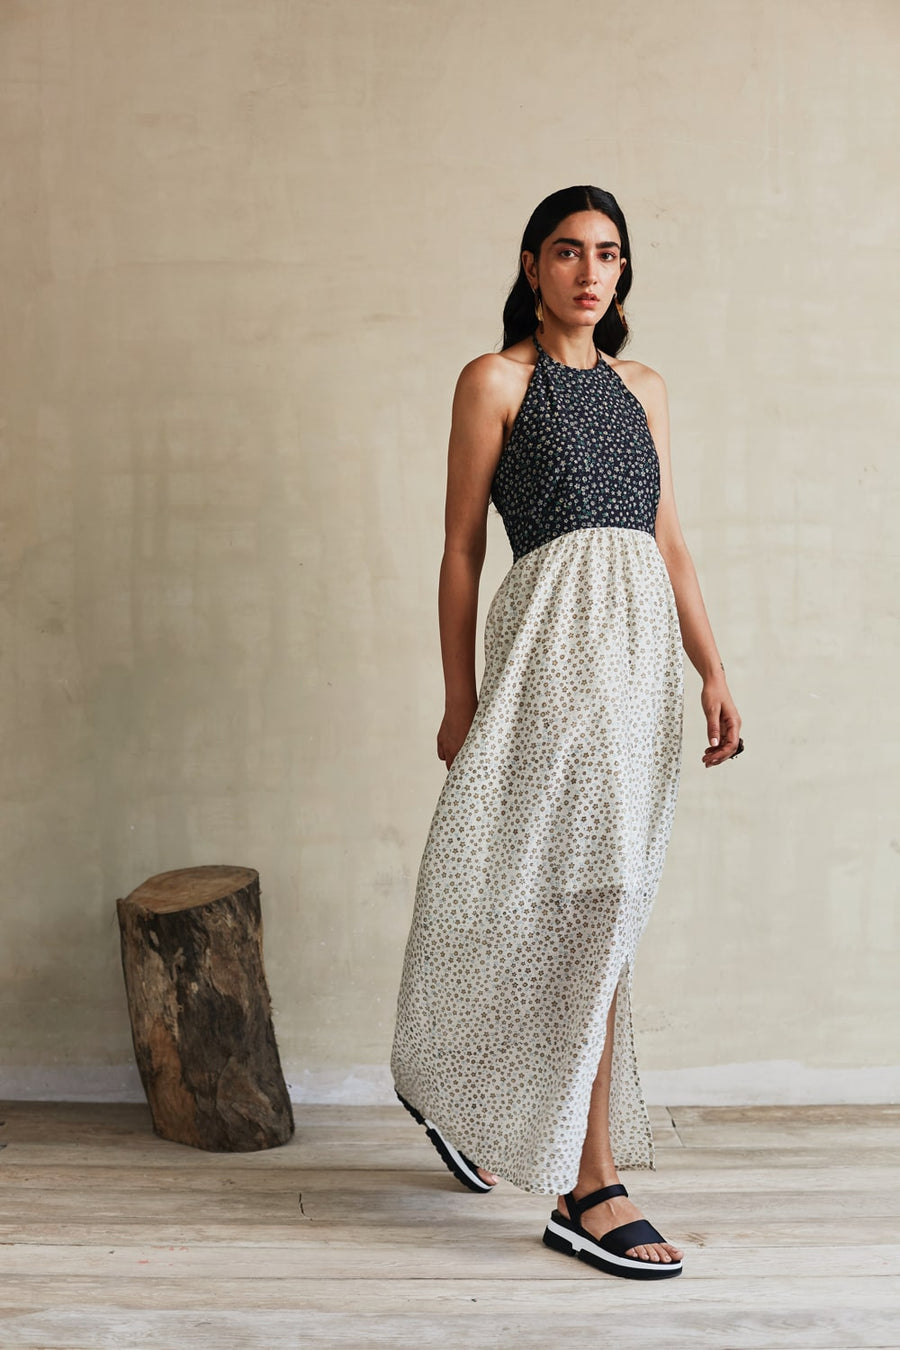 Summer Blossom Maxi Dress - Ethical made fashion - onlyethikal